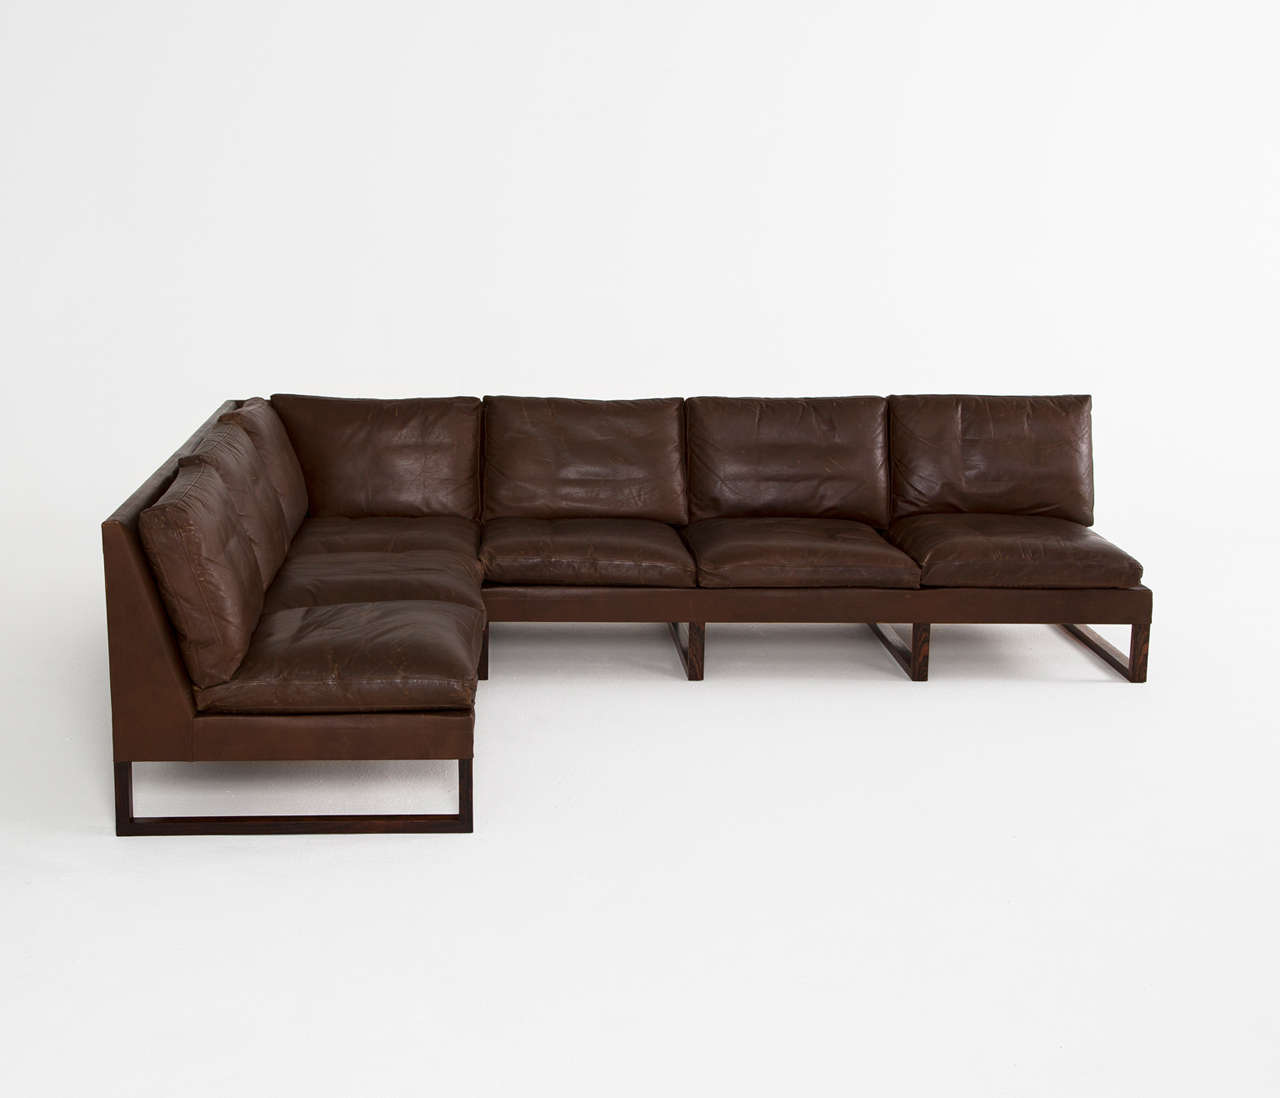 Danish Mid Century Sectional Sofa in Dark Brown Leather  : 1573item1567 1 from 1stdibs.com size 1280 x 1098 jpeg 43kB